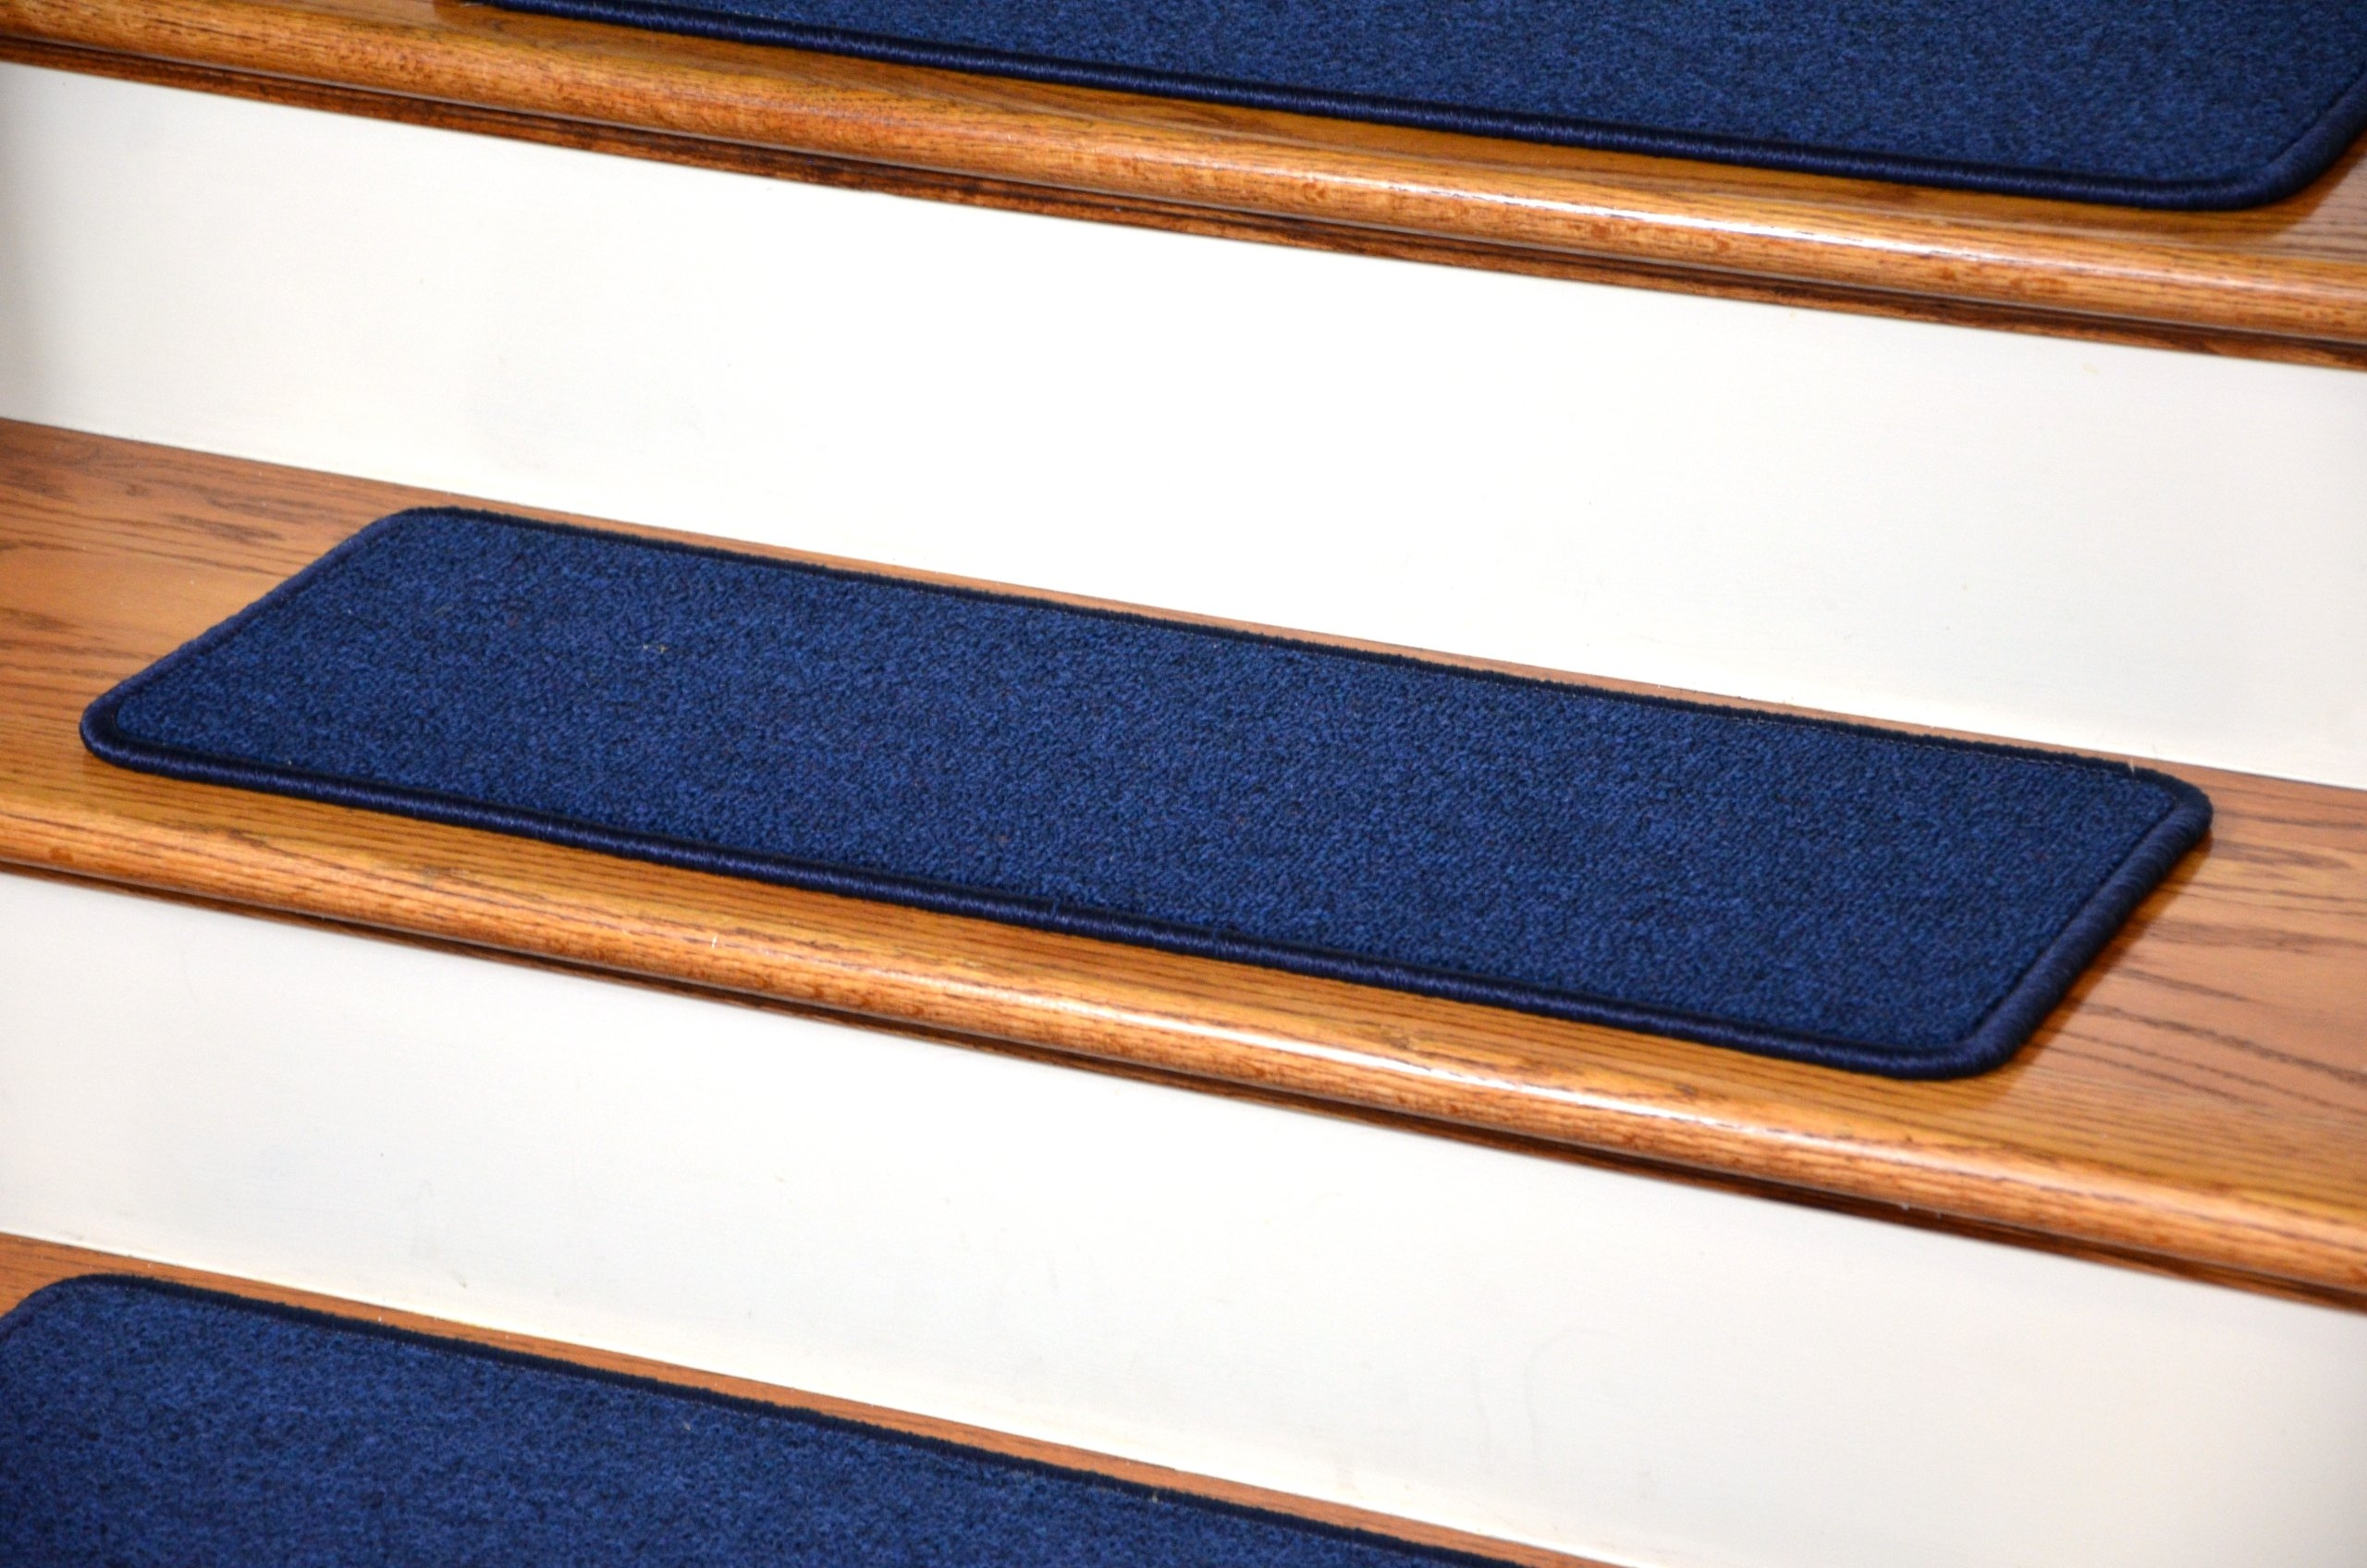 Dean Diy Peel And Stick Serged Non Skid Carpet Stair Treads Navy | Stick On Stair Runners | Hardwood | Stick Serged | Beige Carpet | Wood | Carpet Tiles